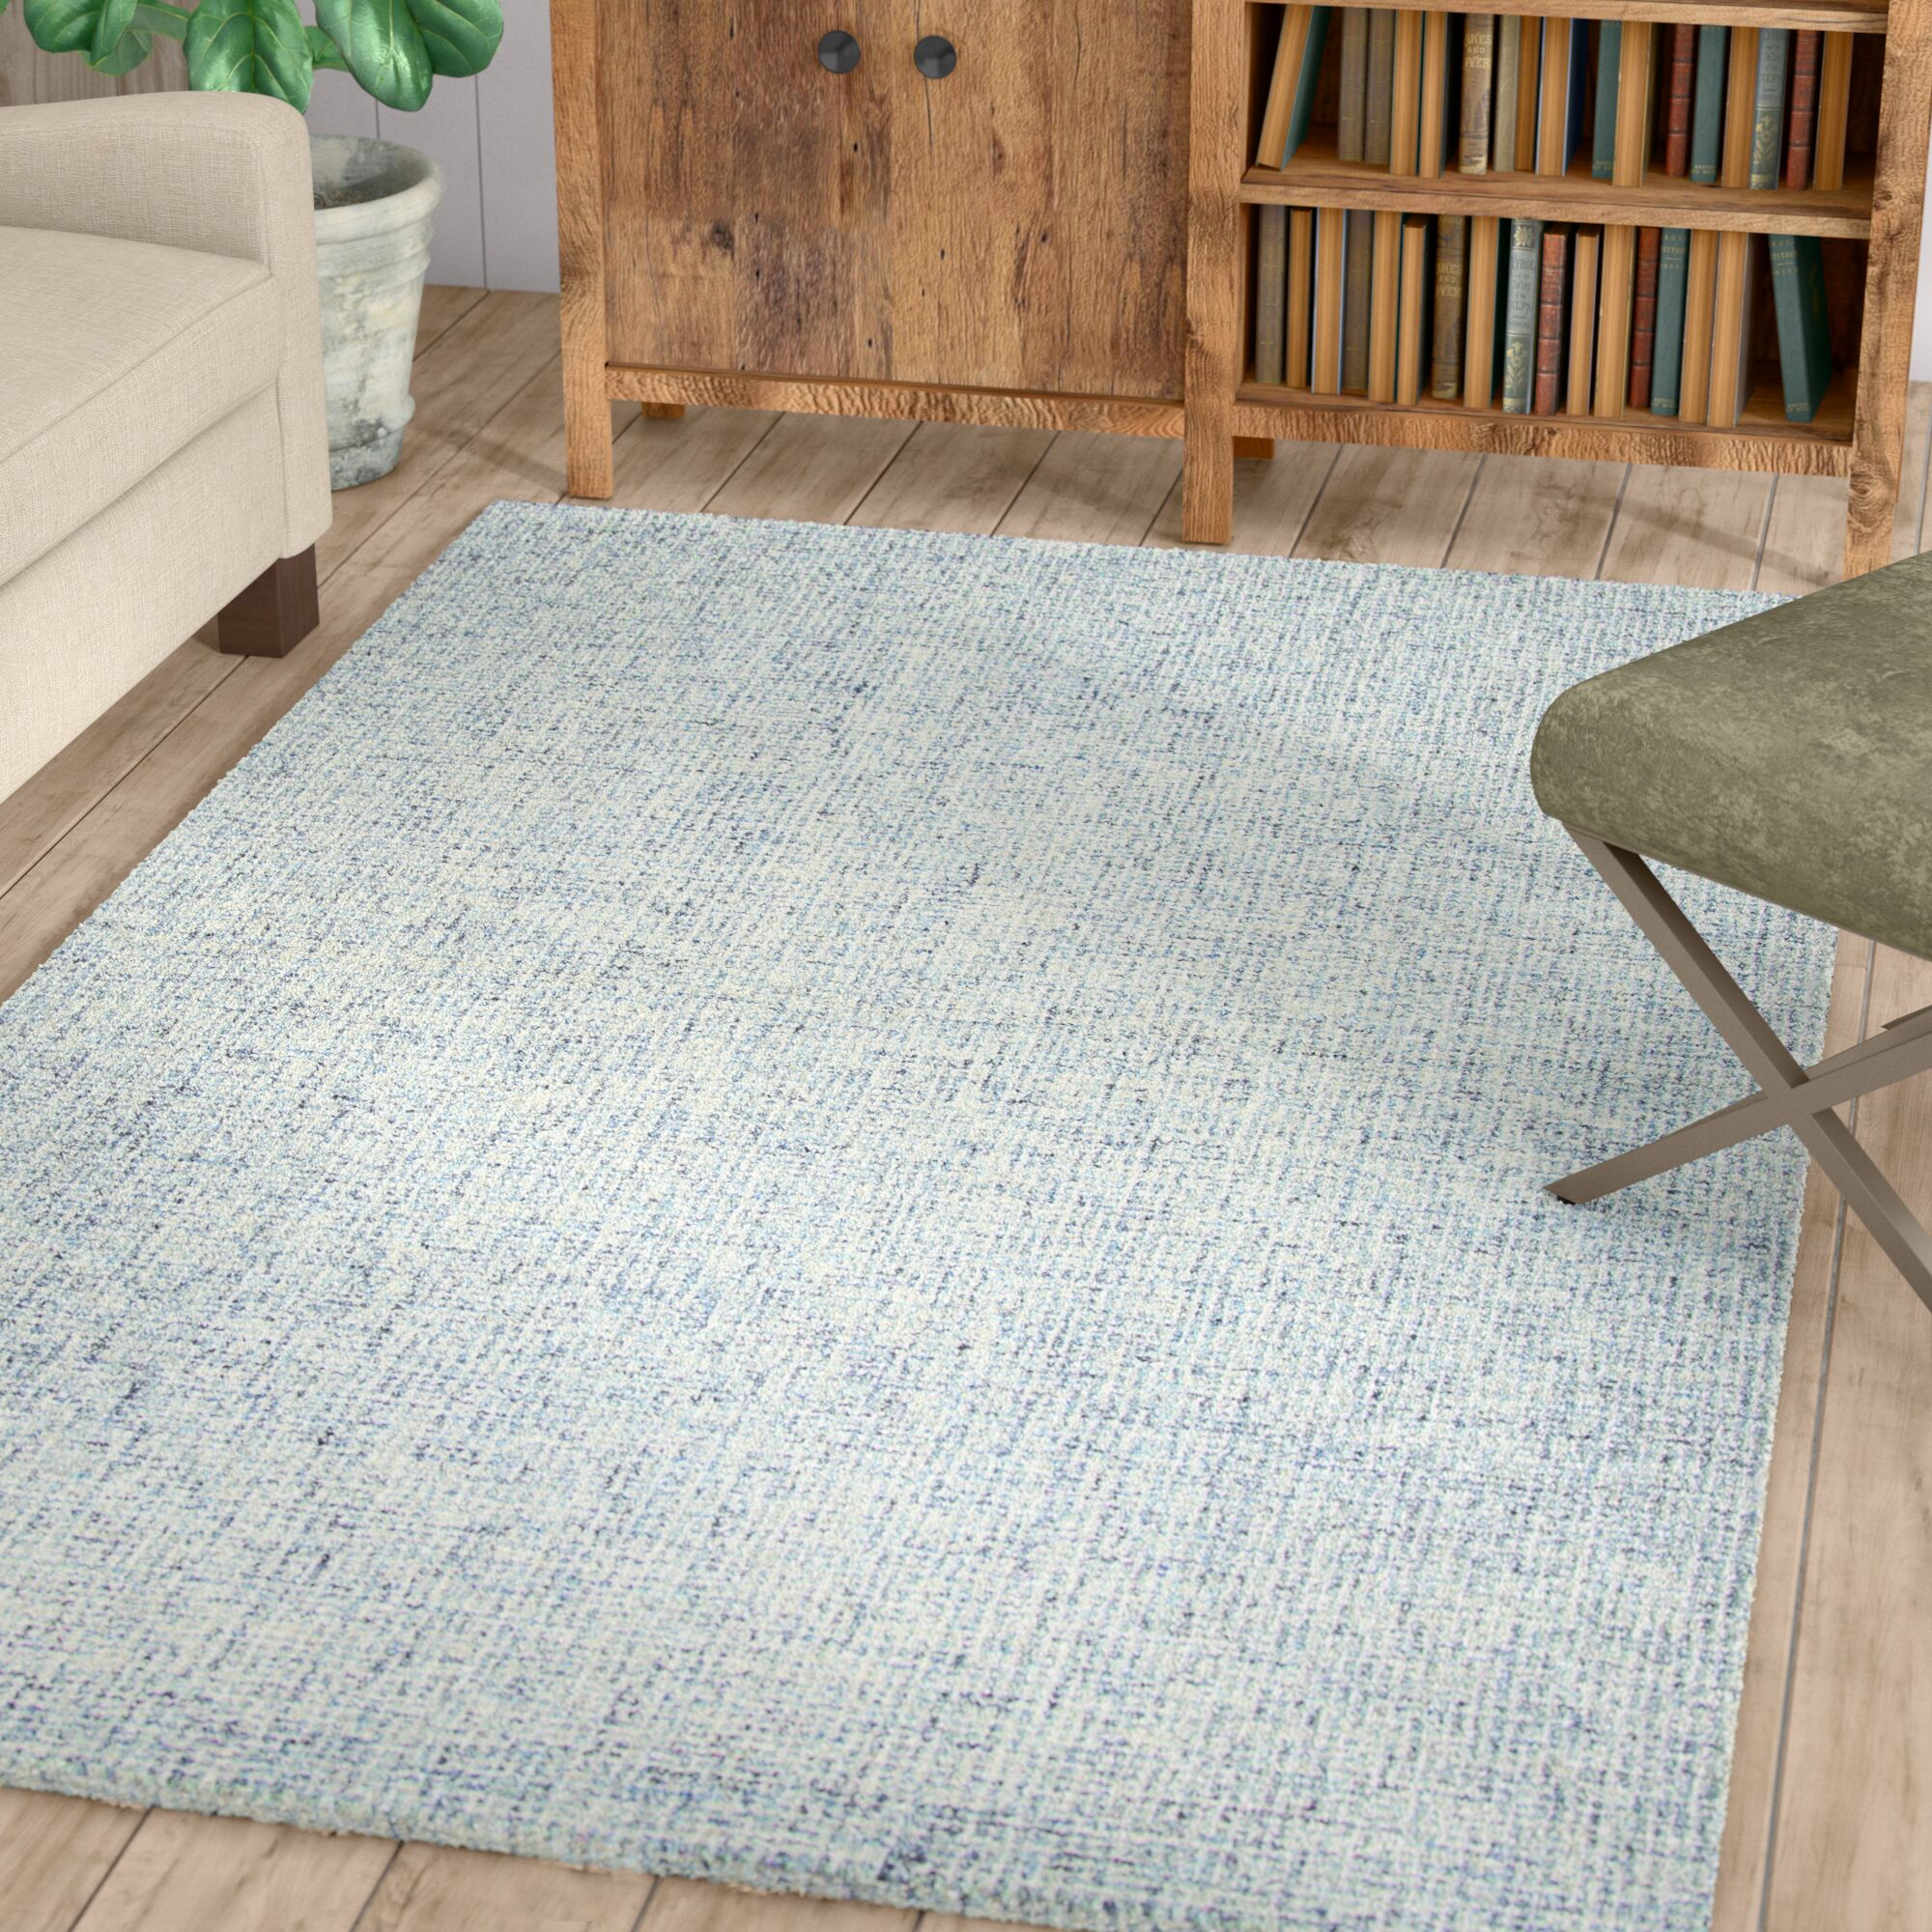 Marsh Hand-Tufted Wool Blue Area Rug Rug Size: Rectangle 5' x 8'